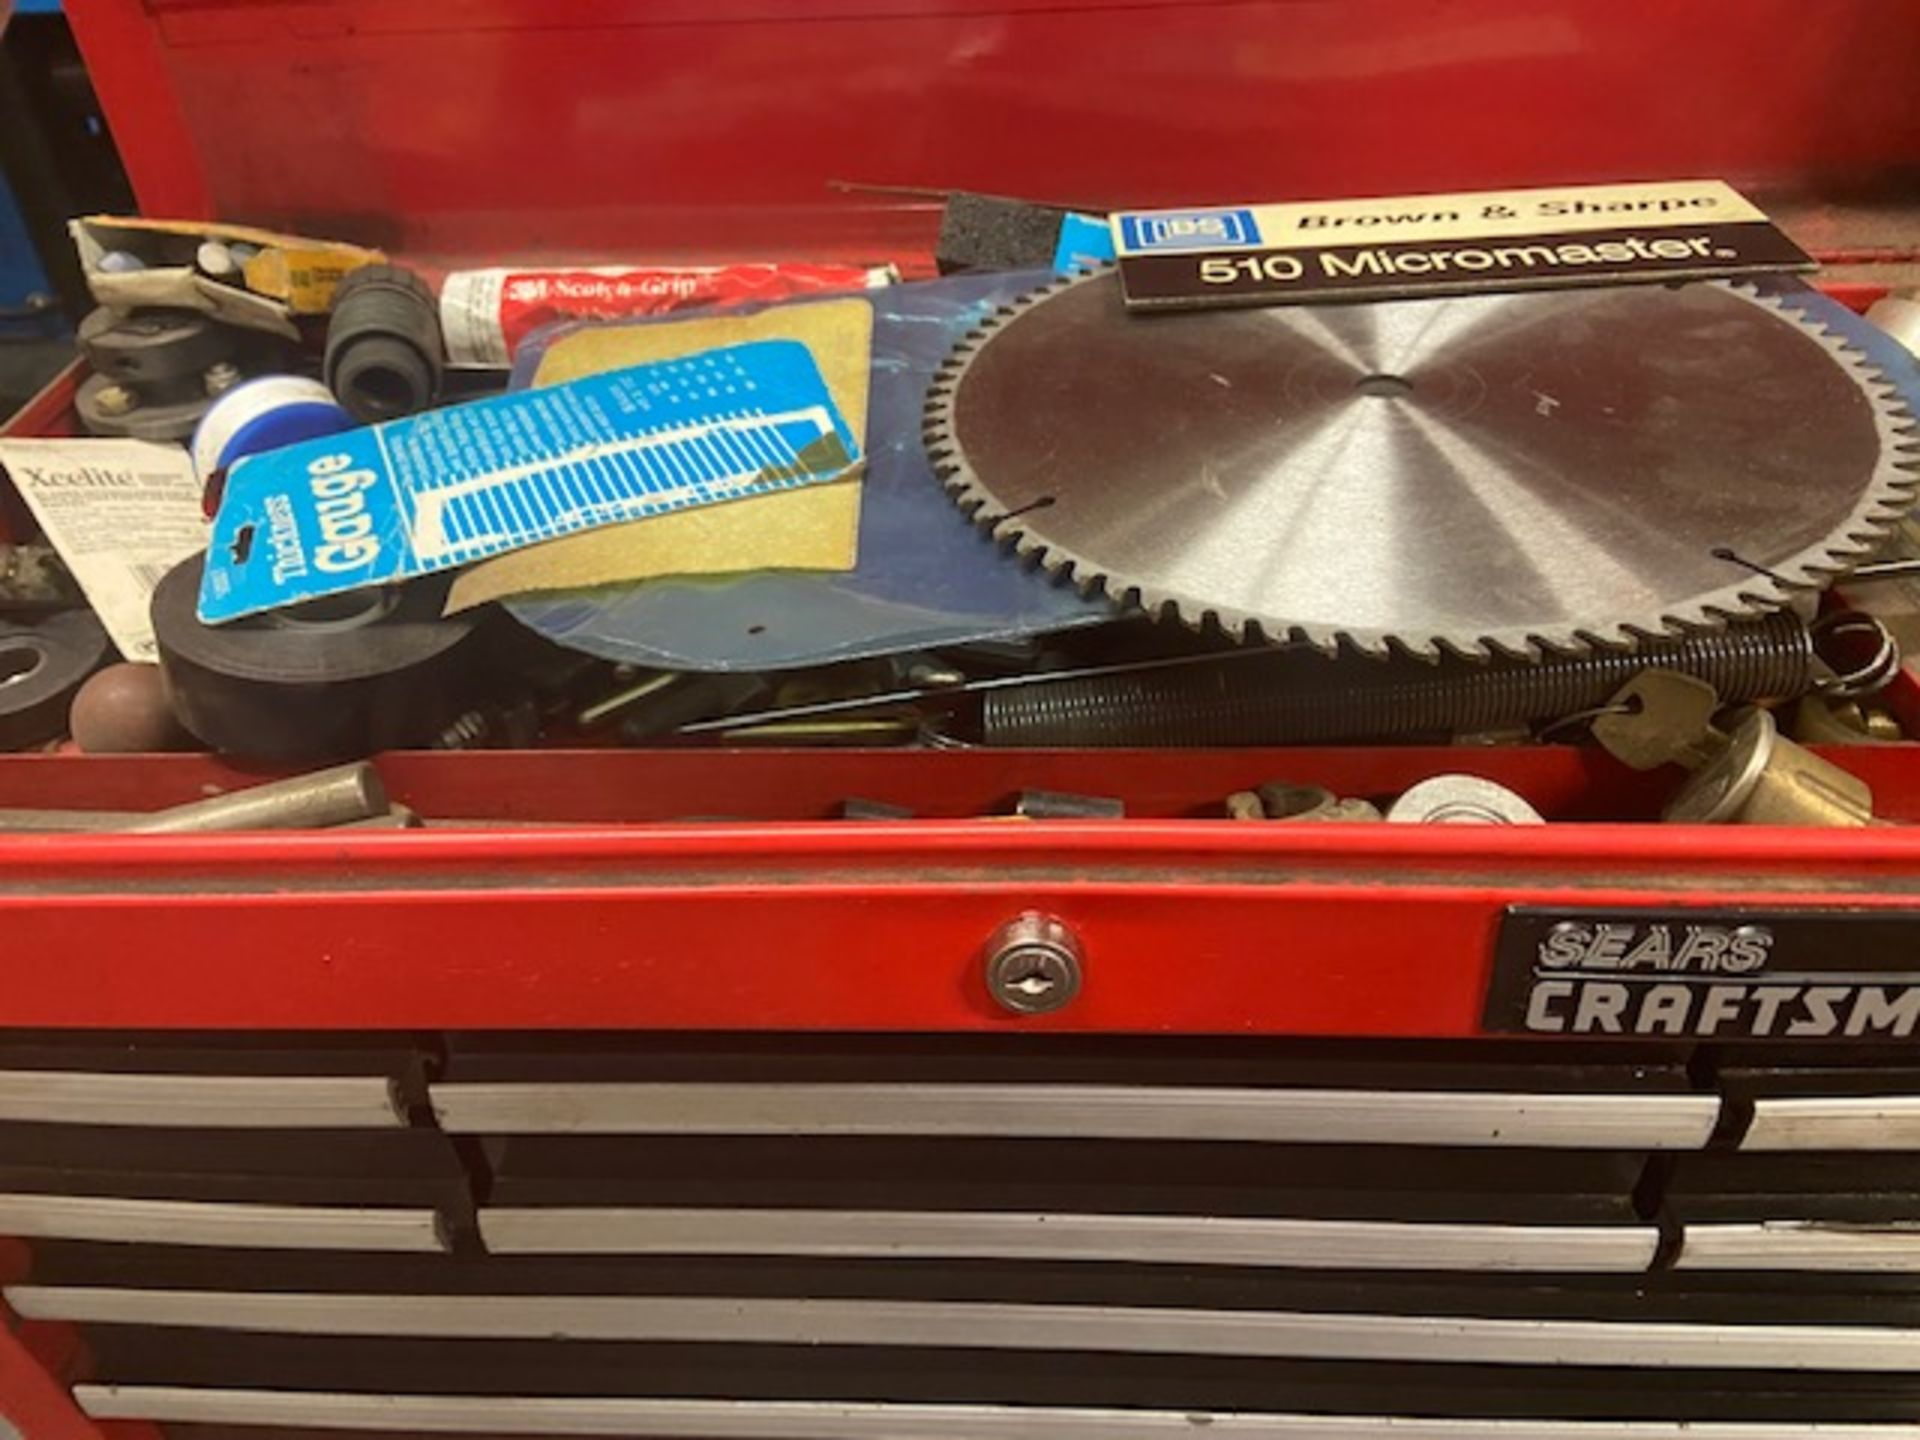 Mastercraft Heavy Duty Tool Cabinet LOADED with contents (hand tools, large drill bits and more) - Image 2 of 6